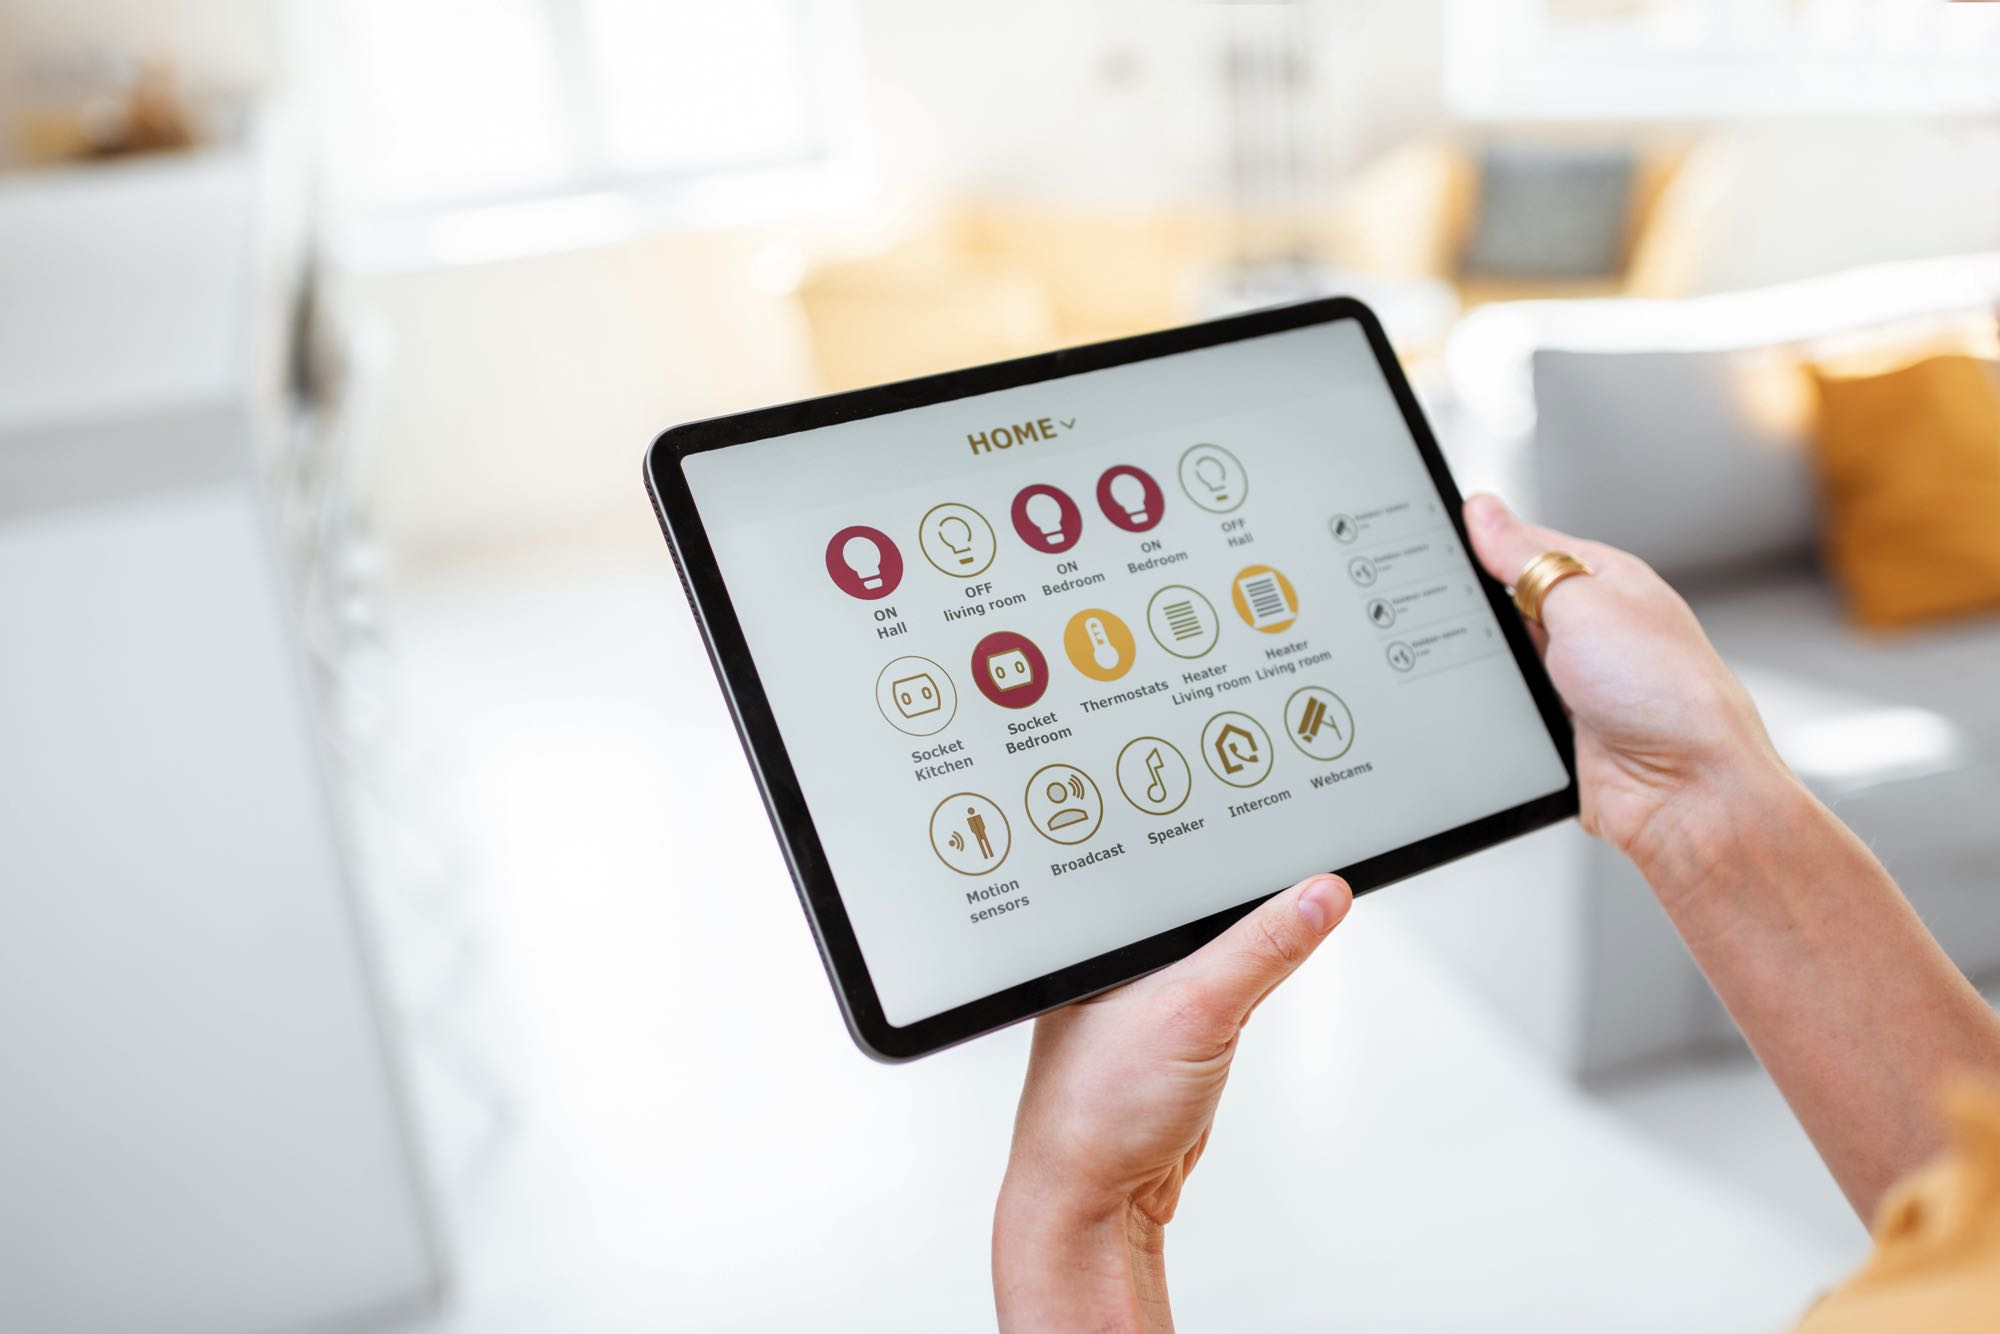 controlling-smart-home-devices-using-a-digital-tab-RNGMSRR.jpg